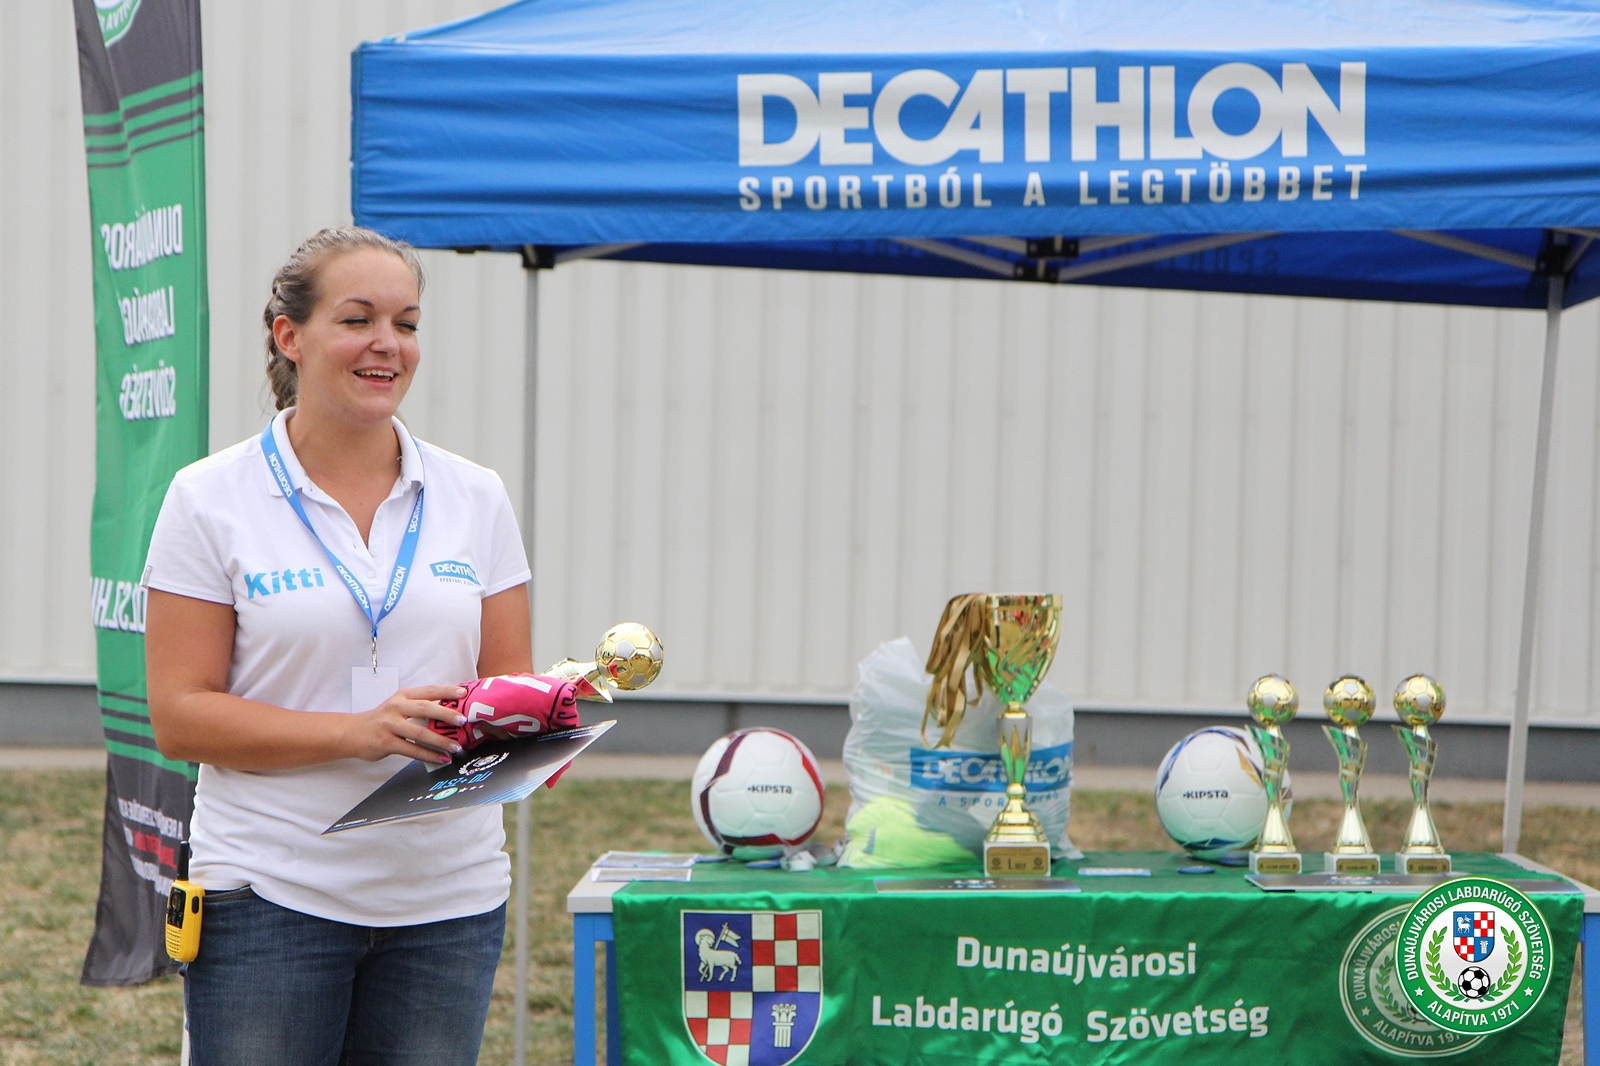 Németh Kitti Decathlon